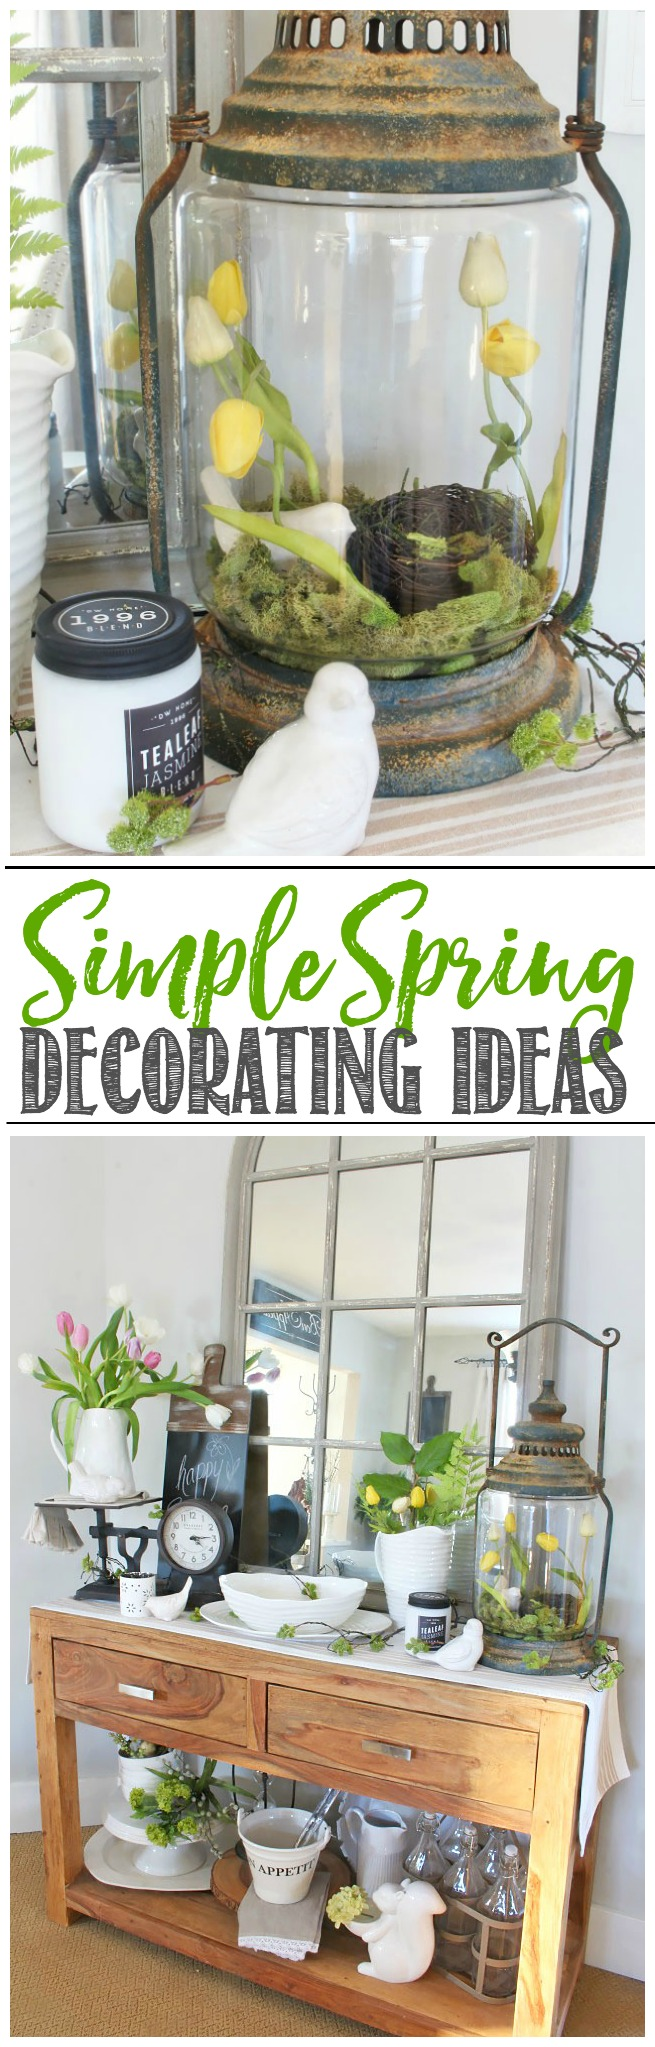 Quick Decorating Ideas quick and easy spring decorating ideas - clean and scentsible